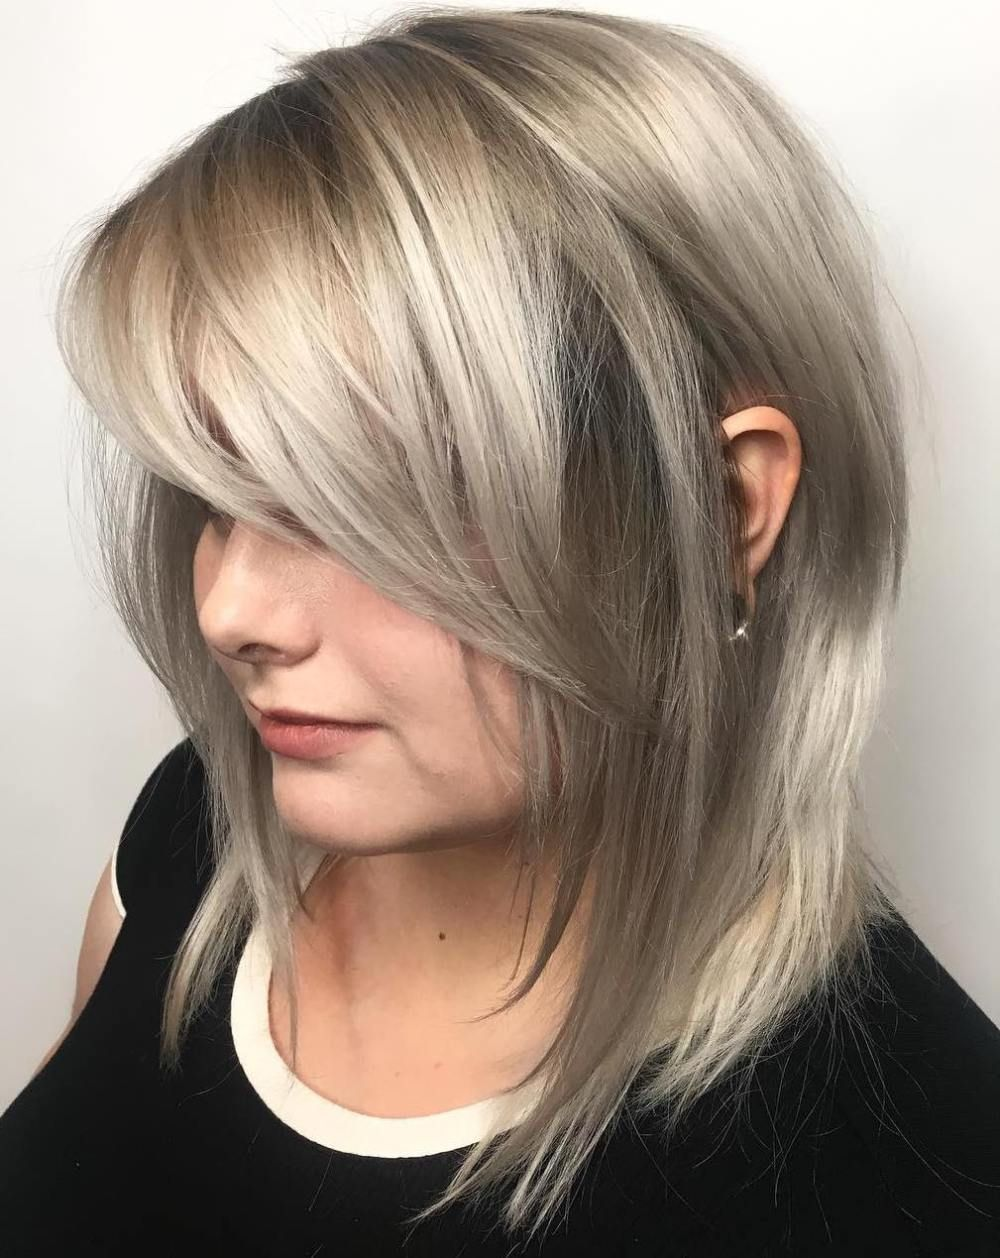 Long layered bob with side bangs